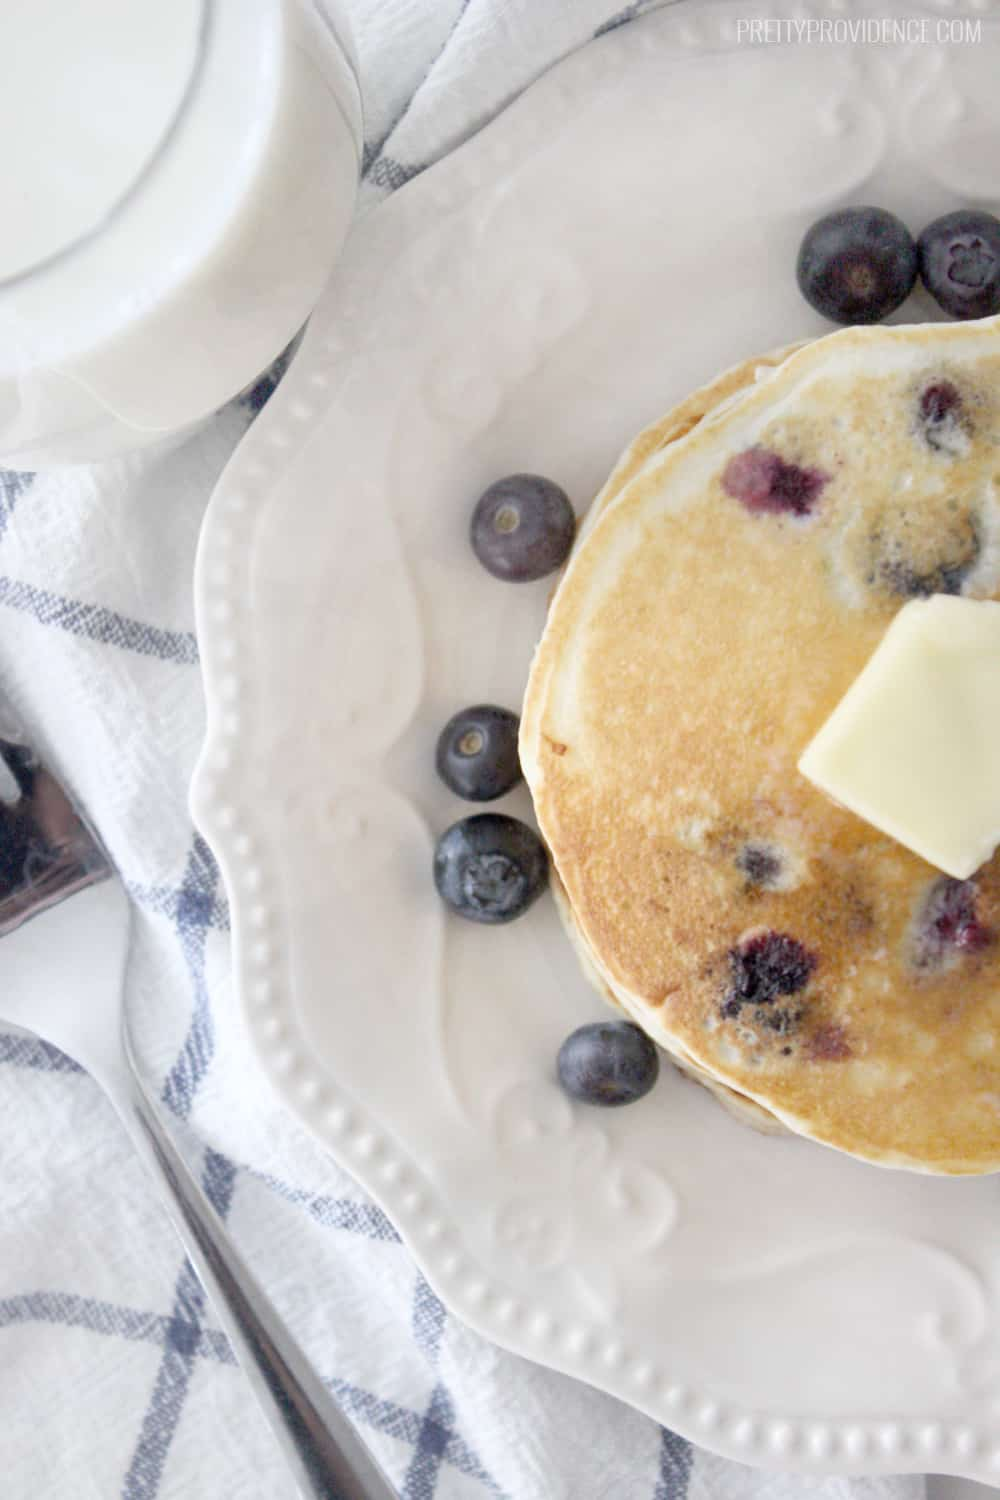 The BEST blueberry pancakes with blueberry syrup you will ever eat in your life! Seriously restaurant quality delicious!